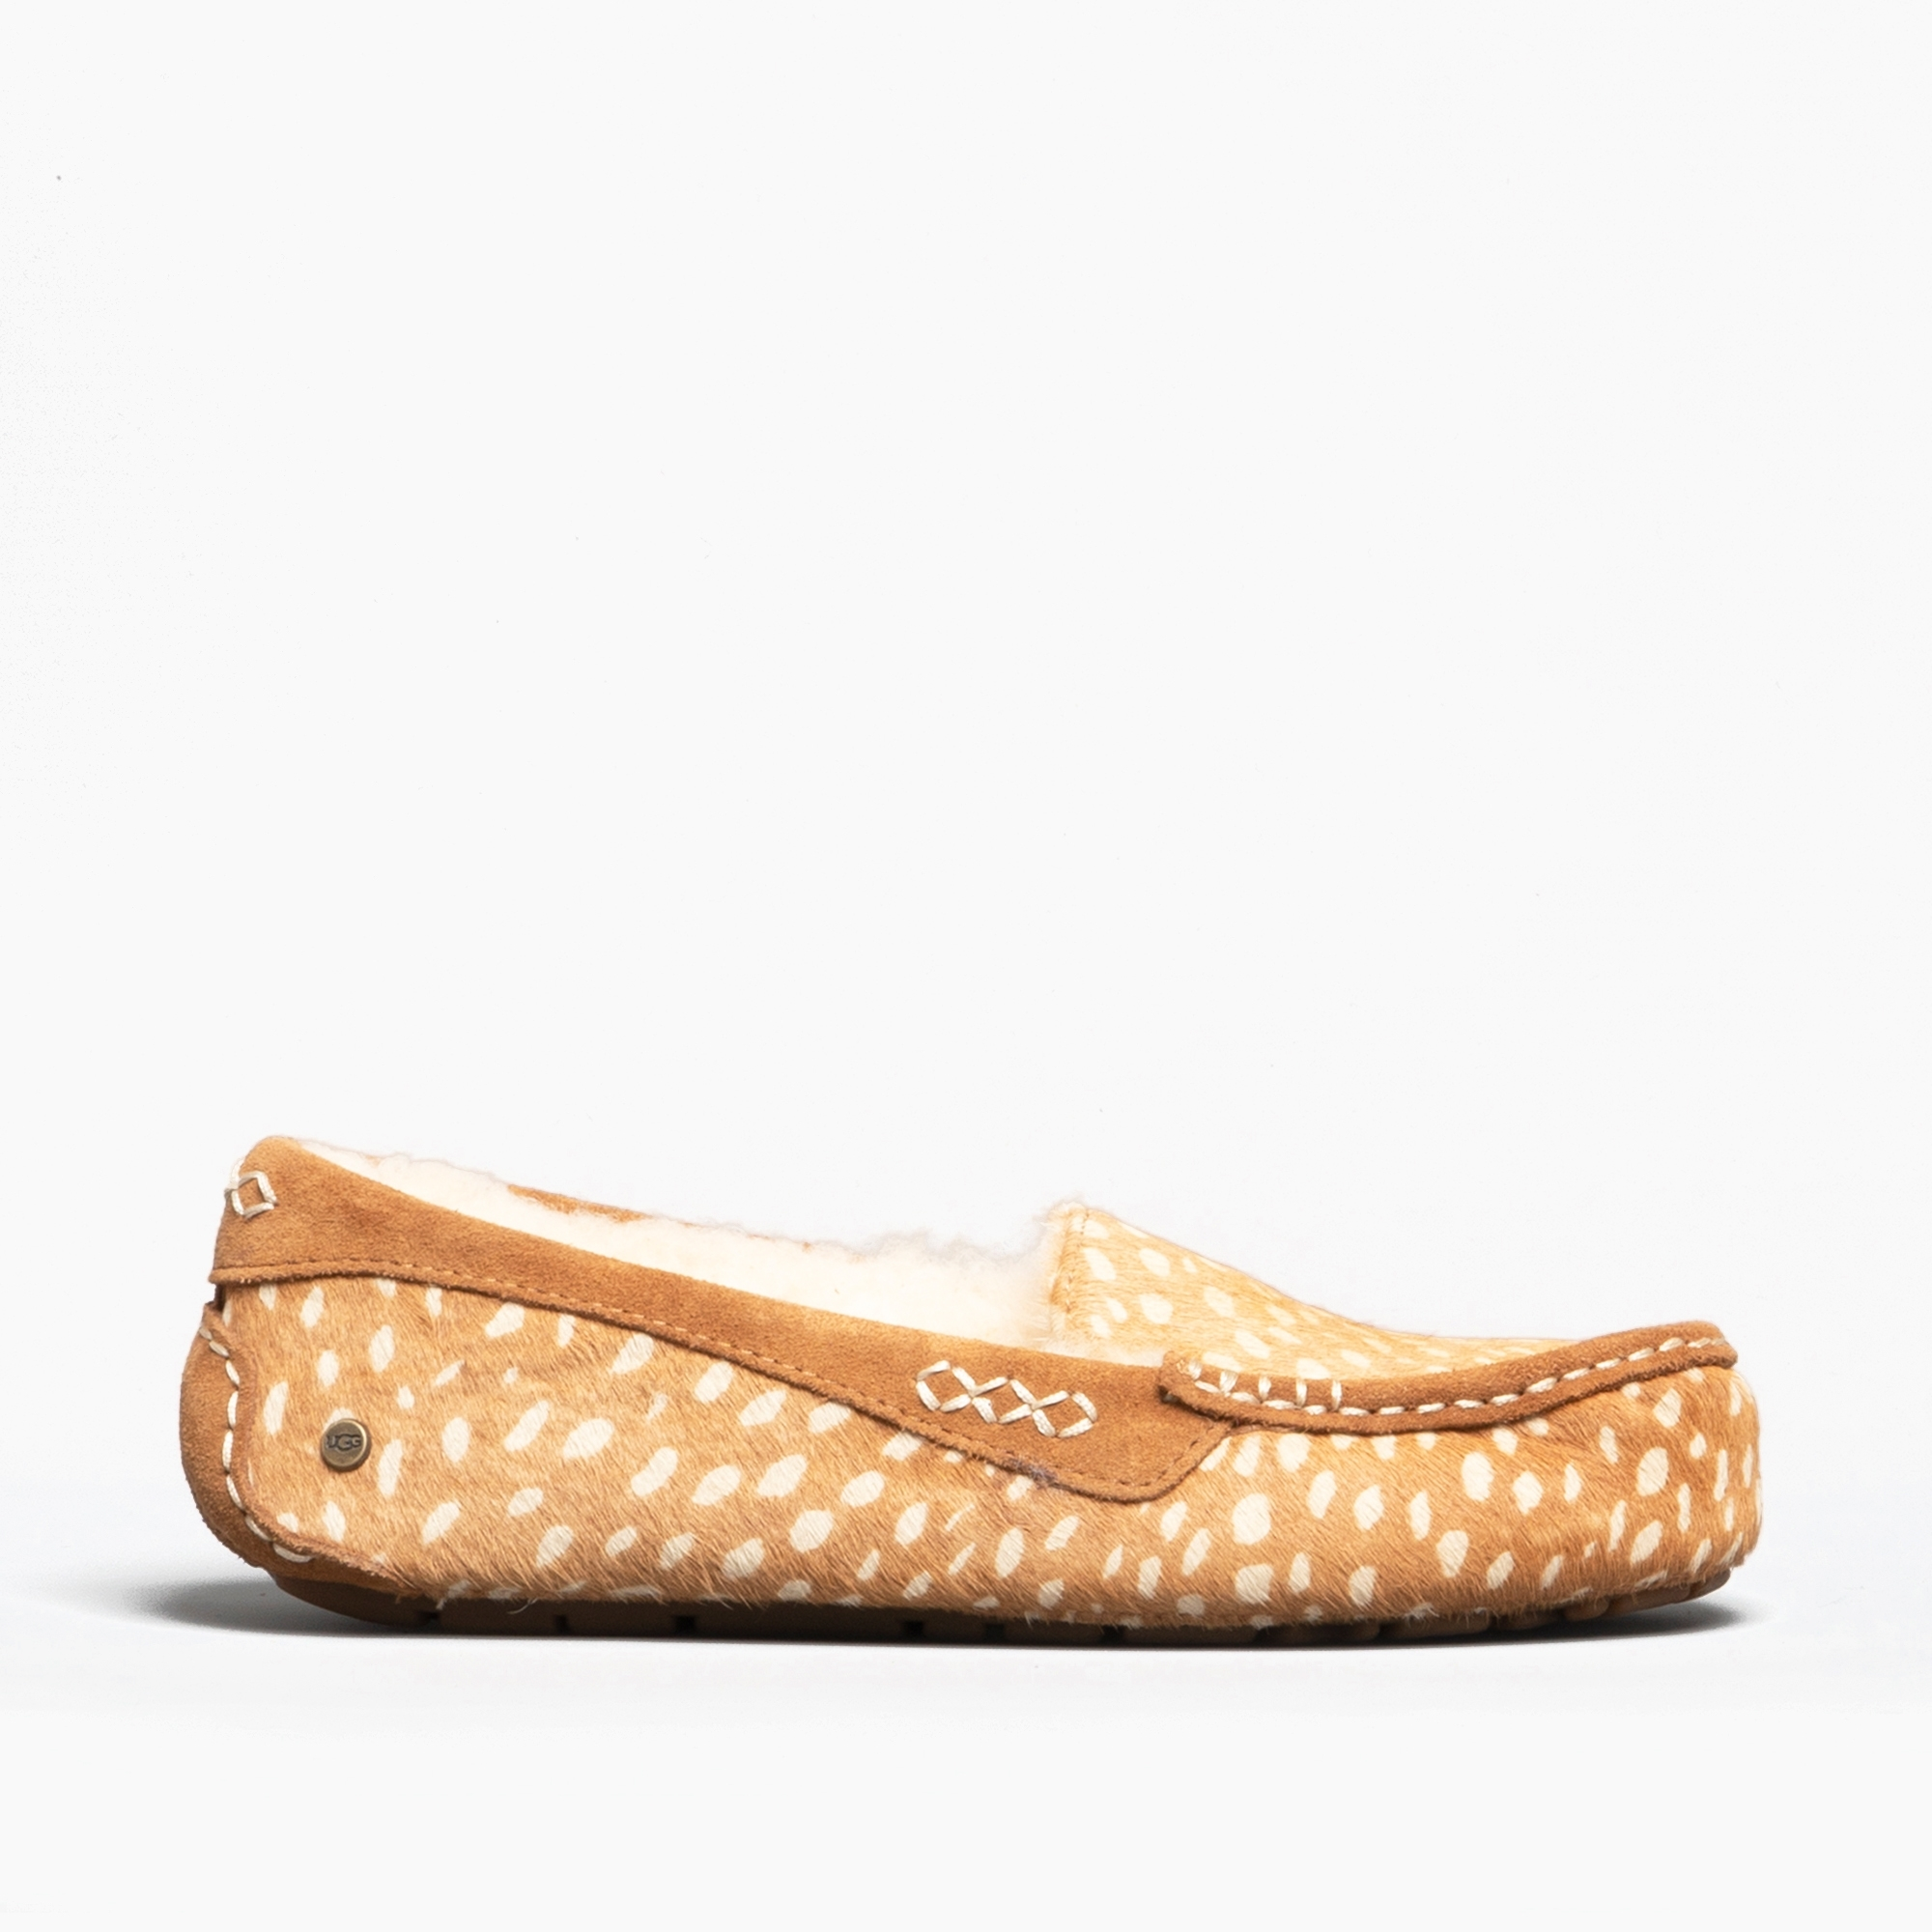 763d077ccf7 UGG ANSLEY IDYLLWILD Ladies Moccasin Slippers Chestnut